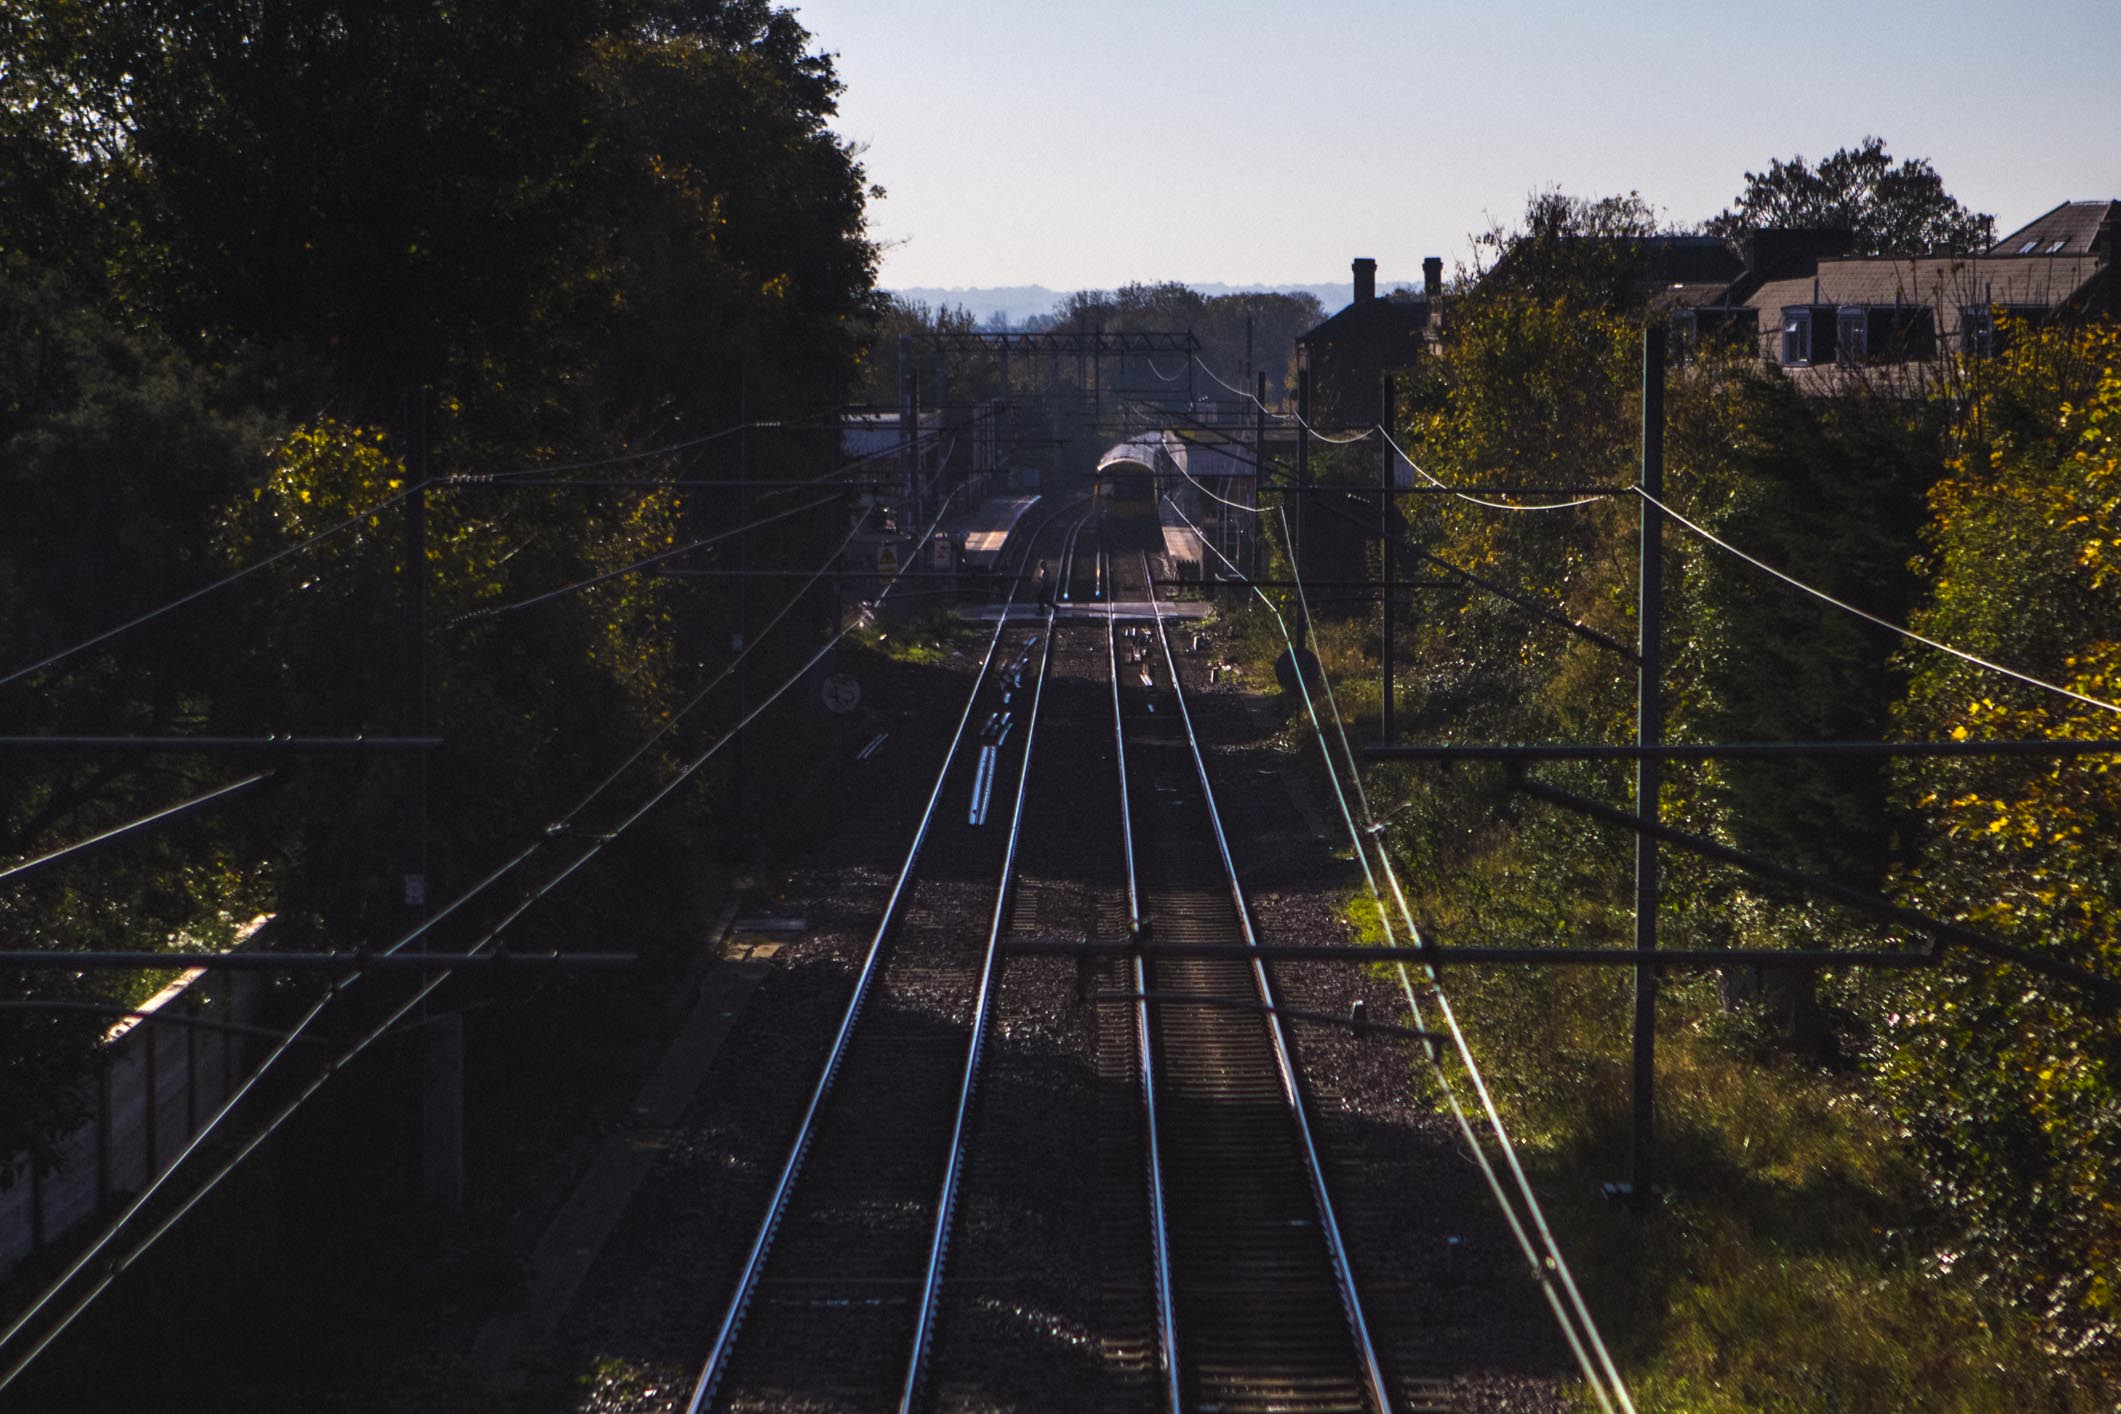 The London Overground through Acton